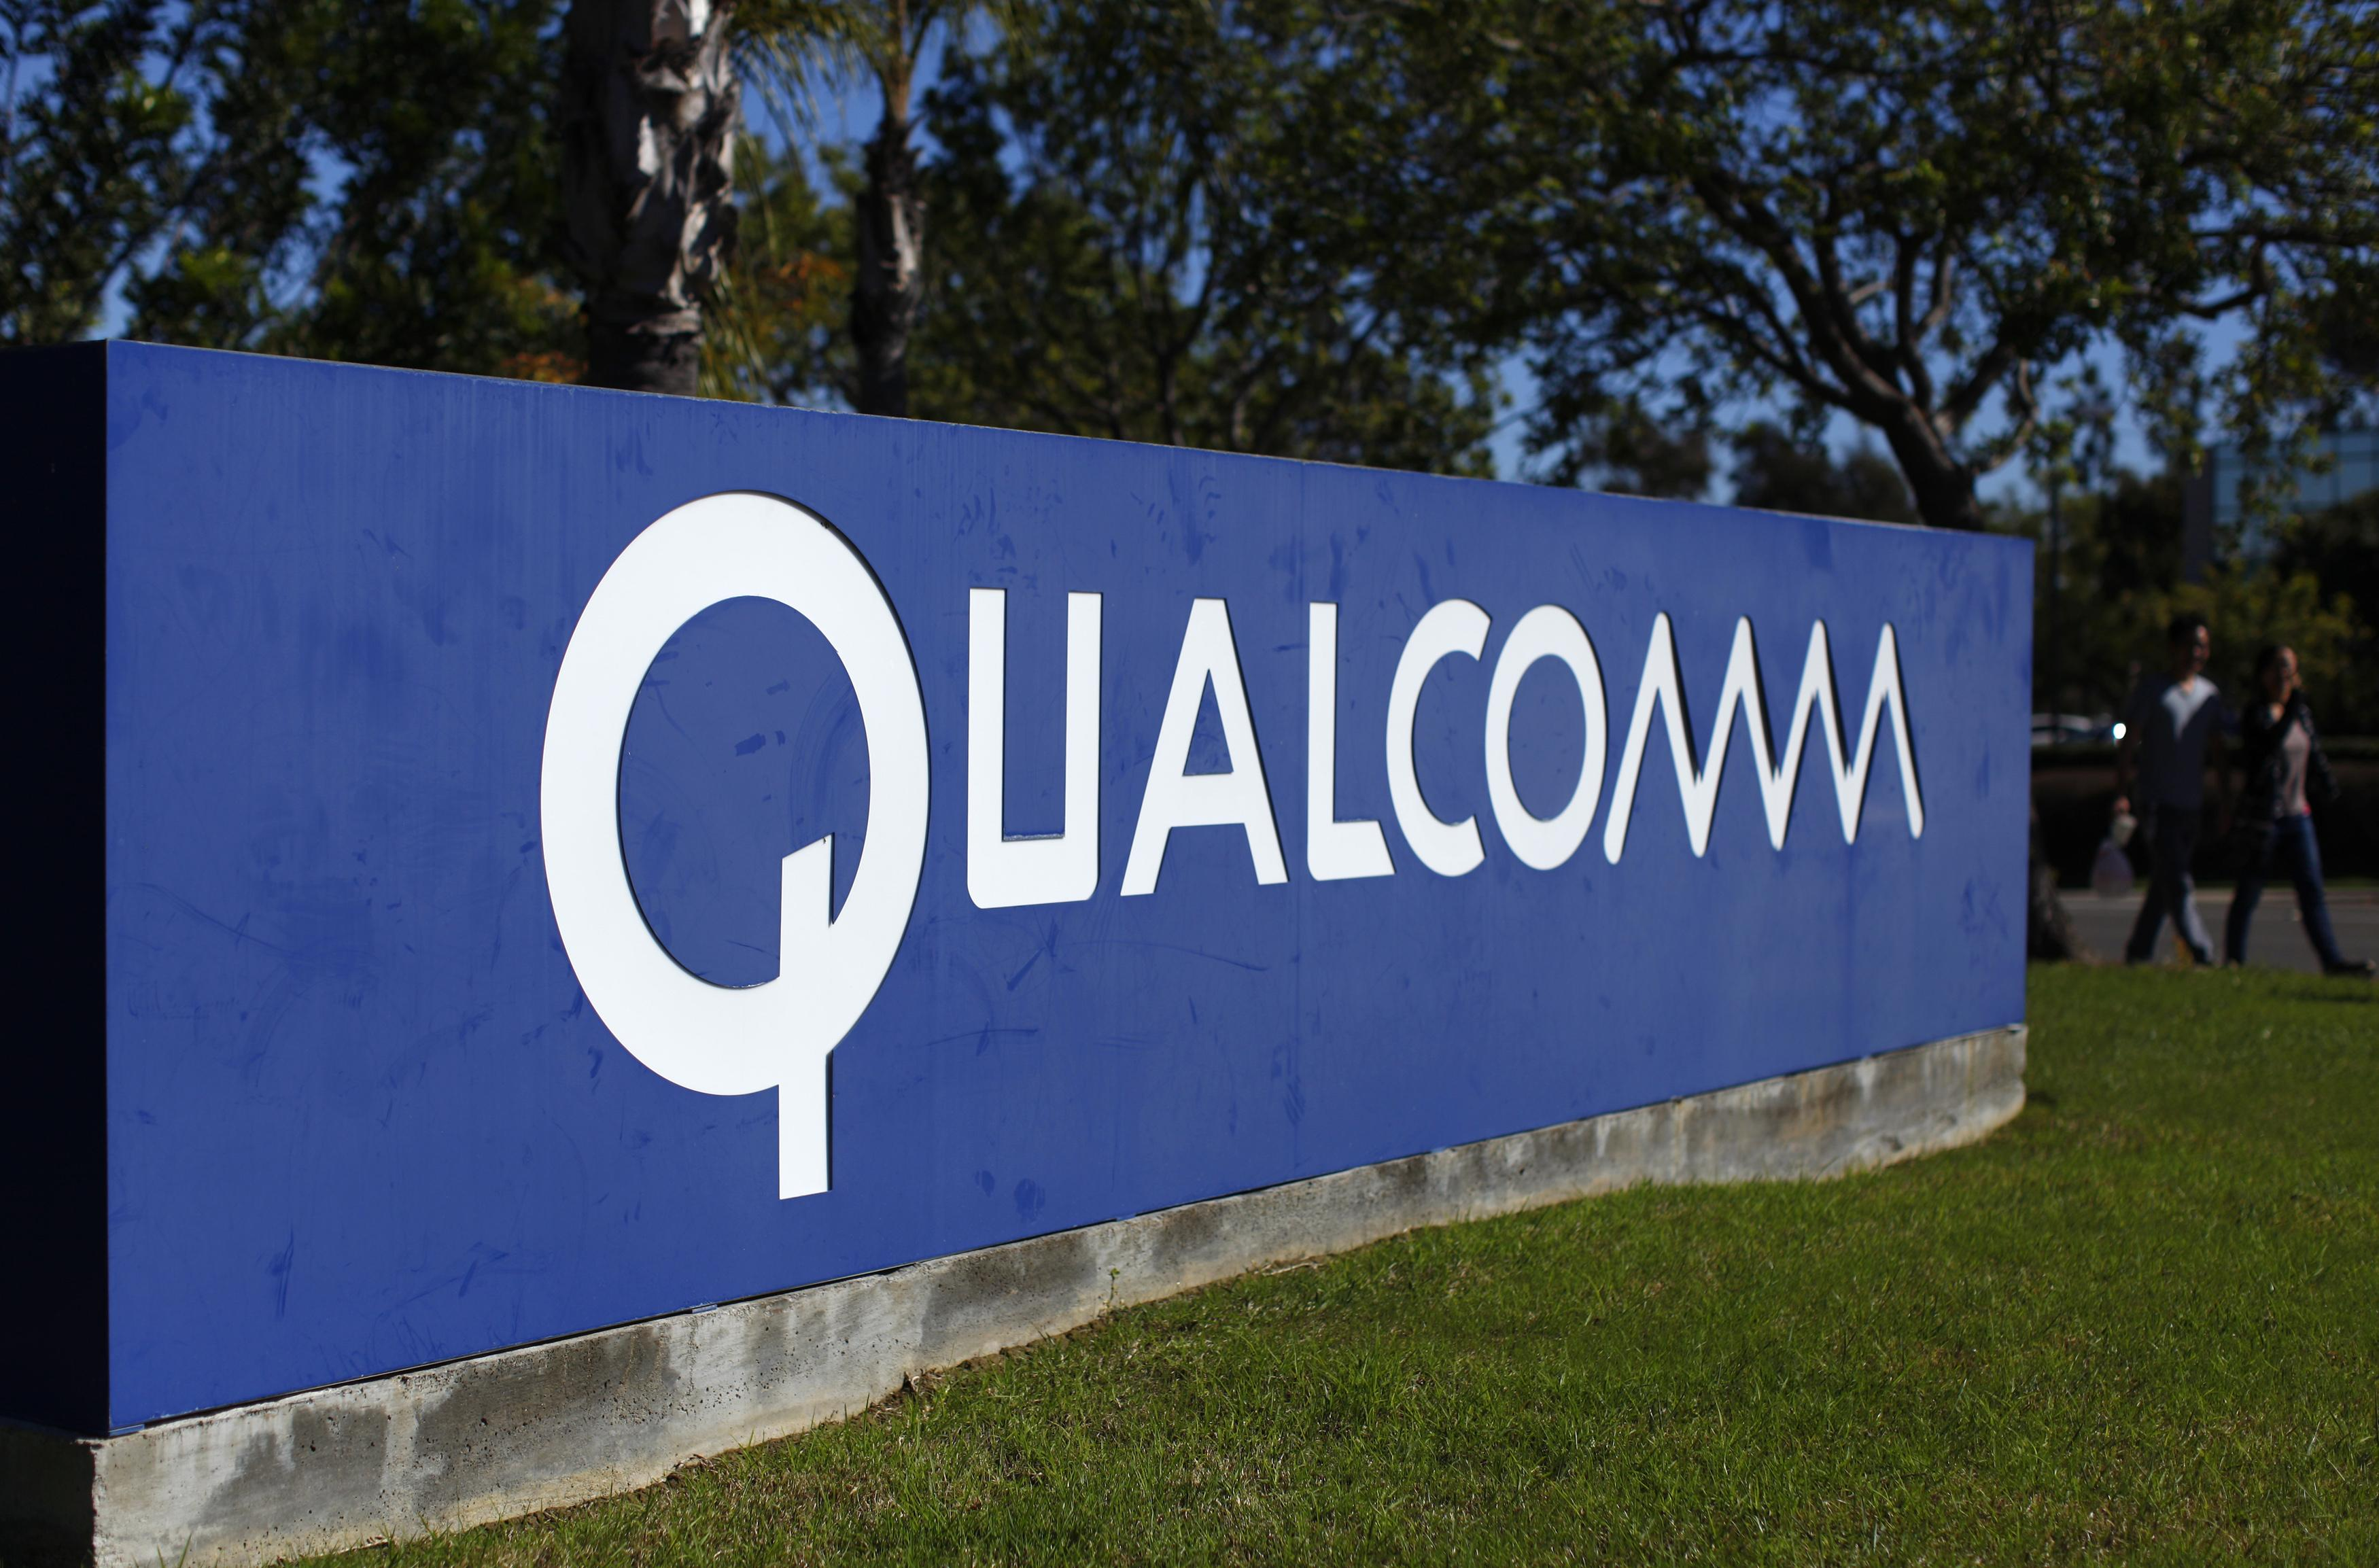 Qualcomm interim CFO David Wise to retire